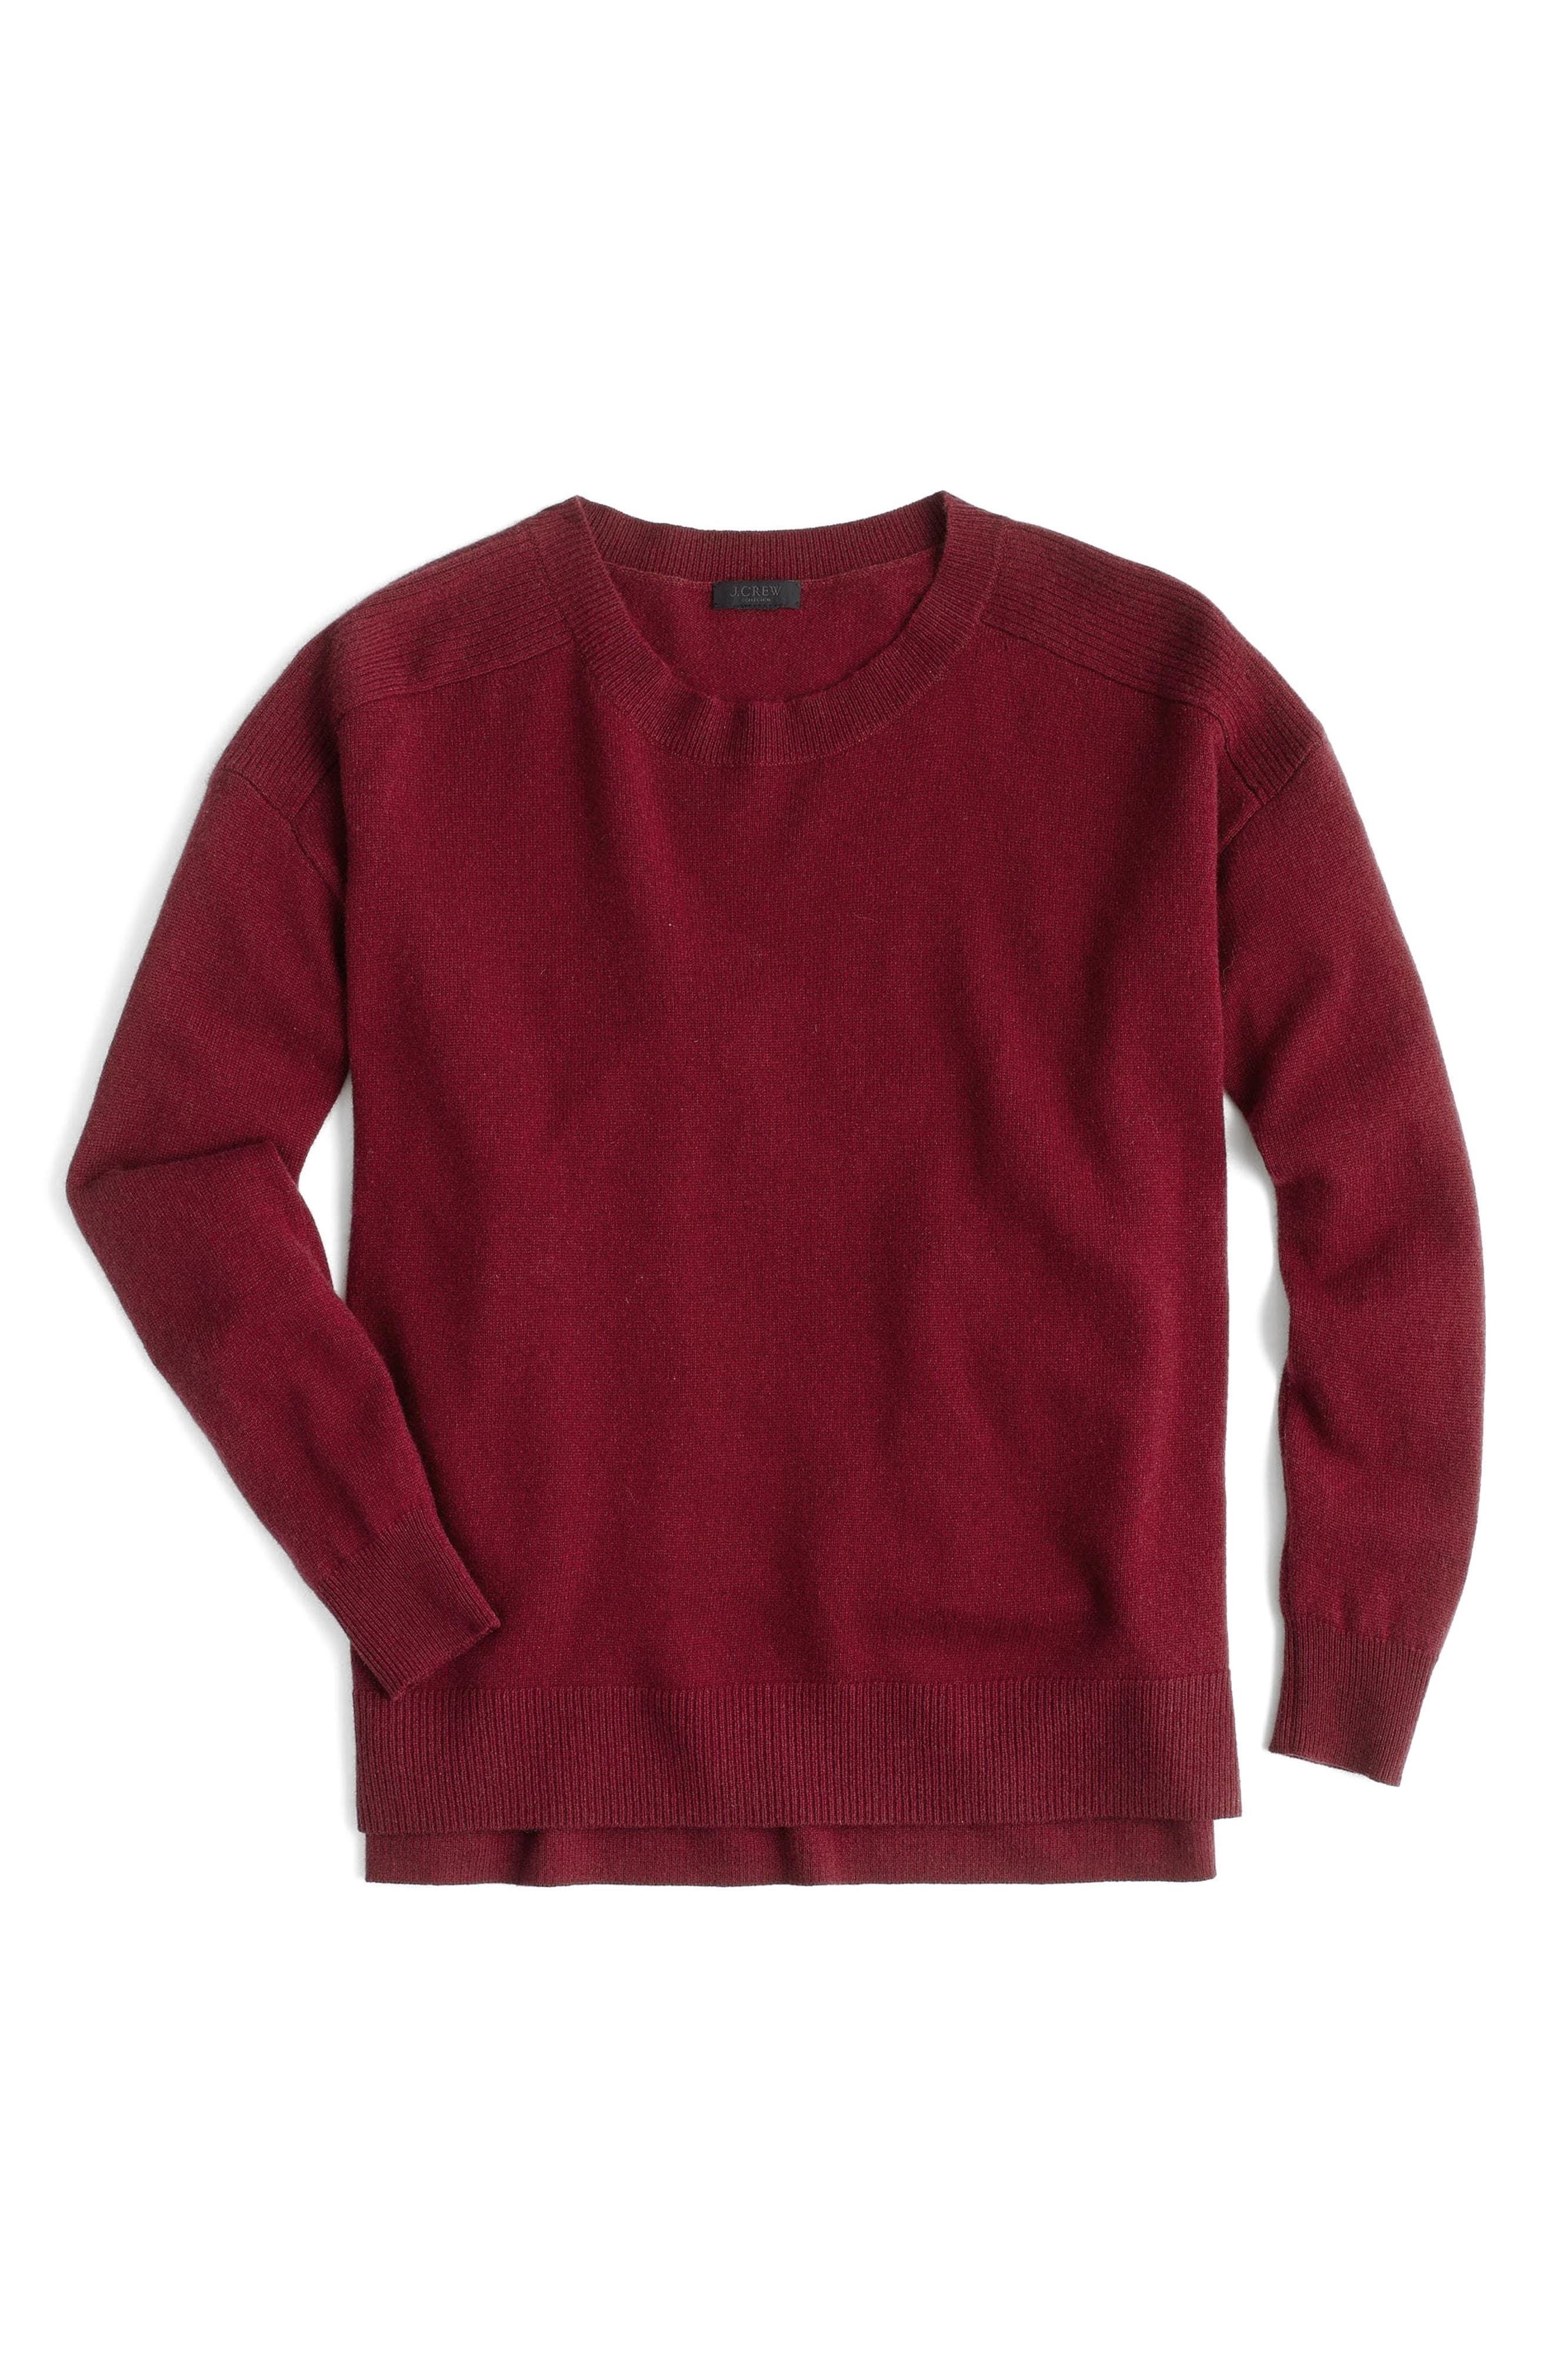 J.Crew Carine Relaxed Cashmere Sweater